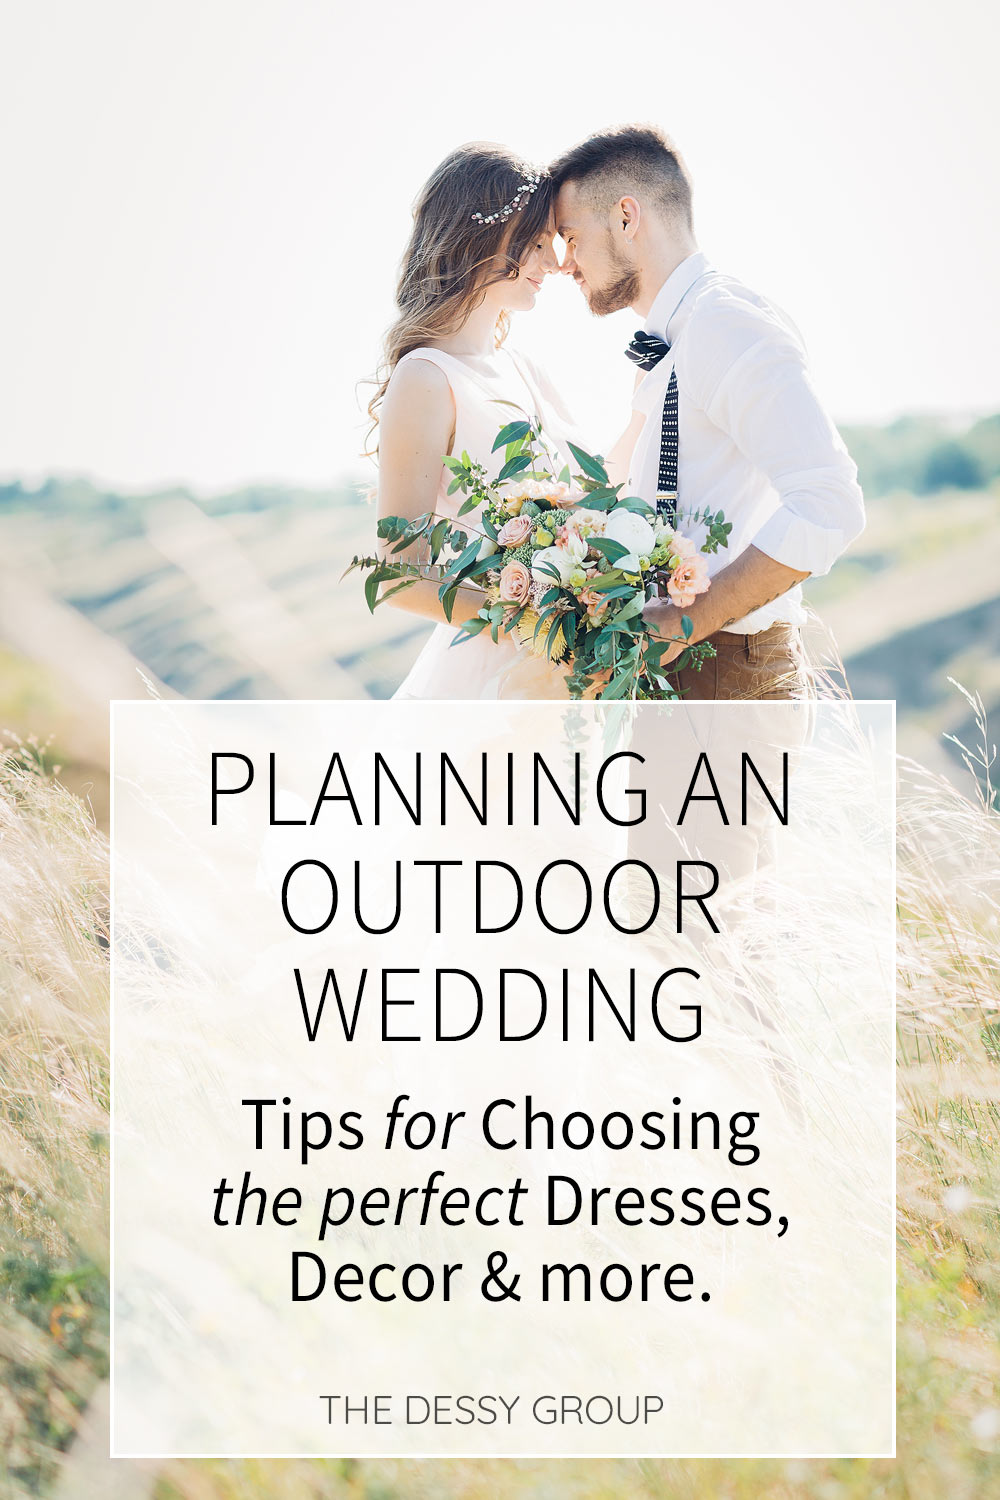 Are you planning an outdoor wedding? You'll find tips for choosing wedding colors and decorations to complement different venues, plus food and dress ideas for the cool weather of Fall to hot Summer weather.